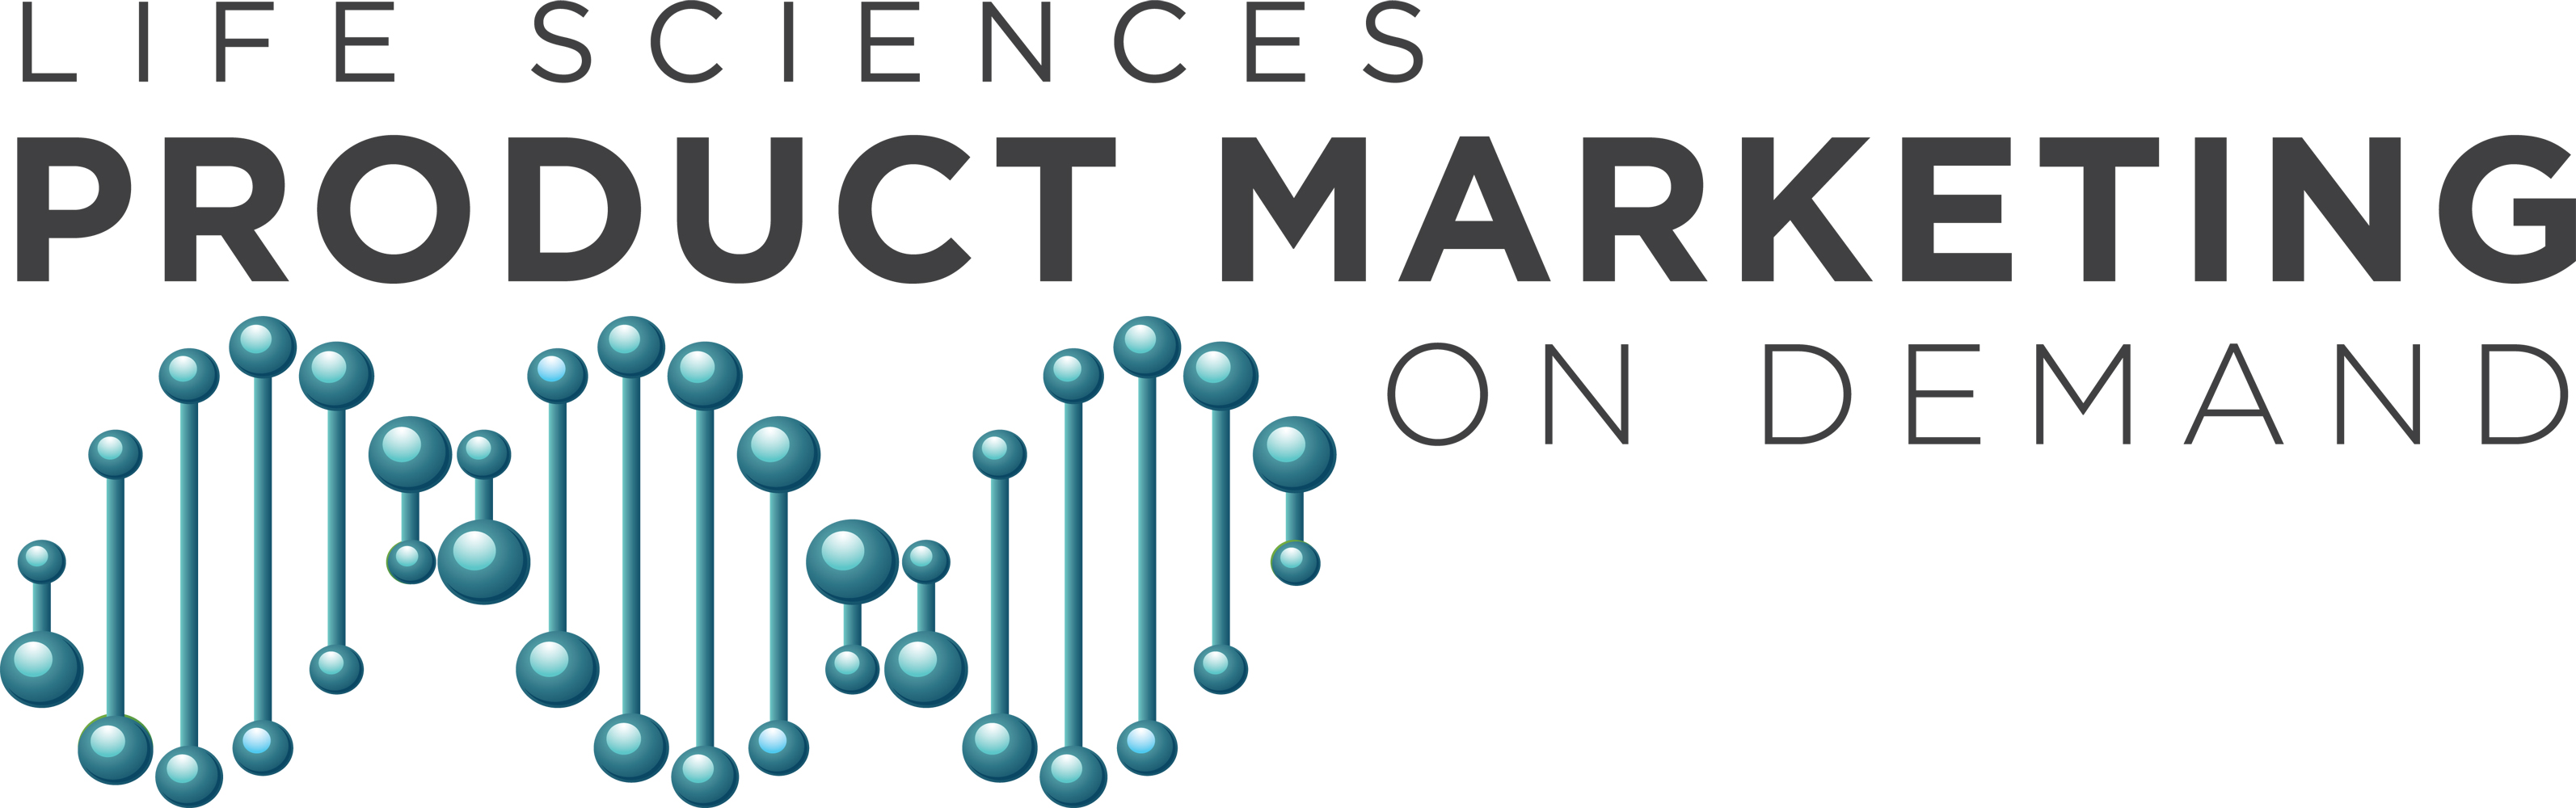 Life Sciences Product Marketing on Demand